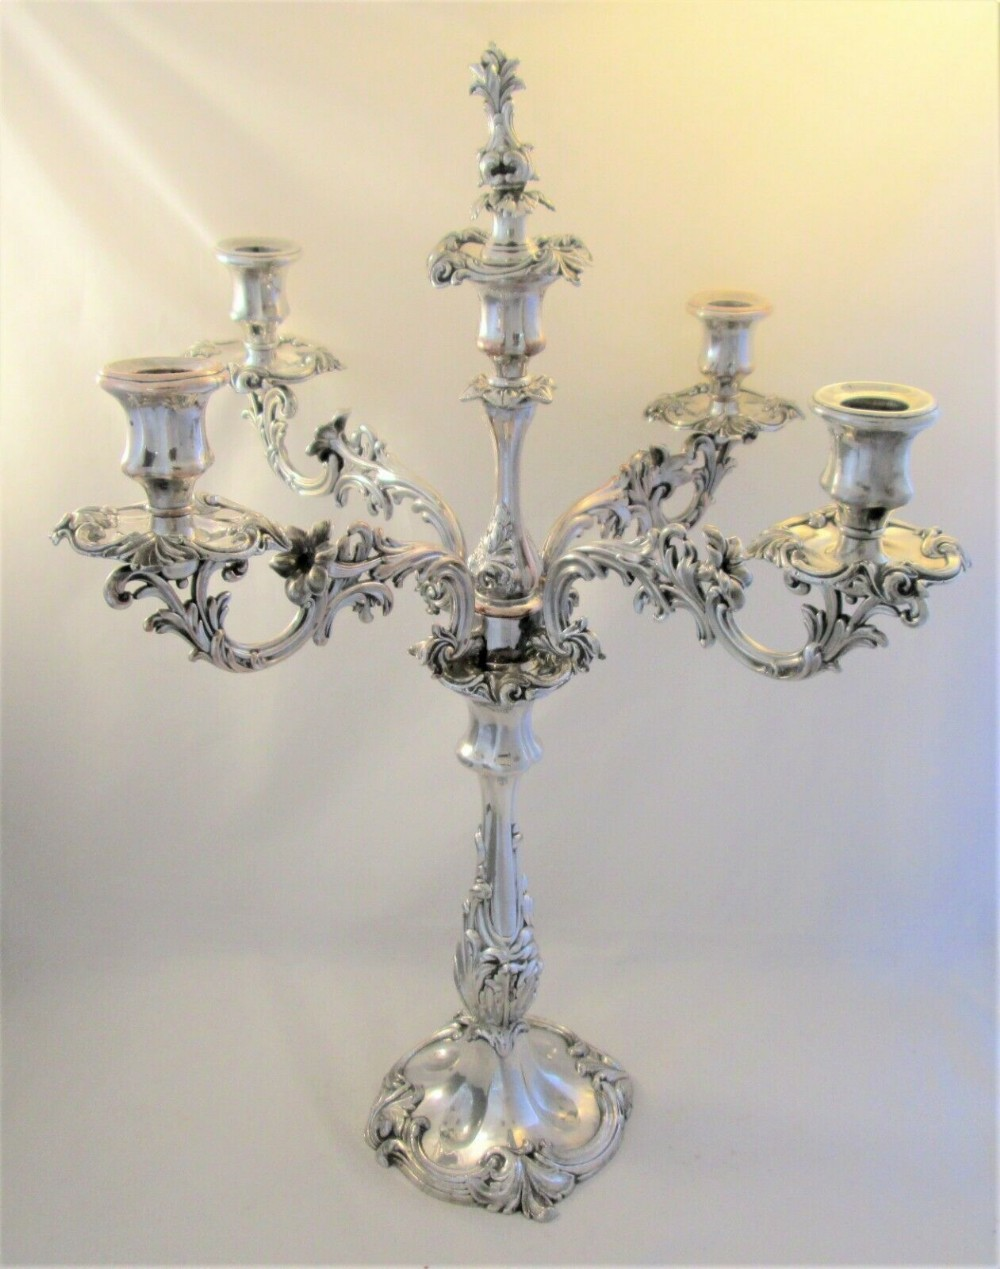 large 5 branch old sheffield plate candelabra by dixon sons c1830